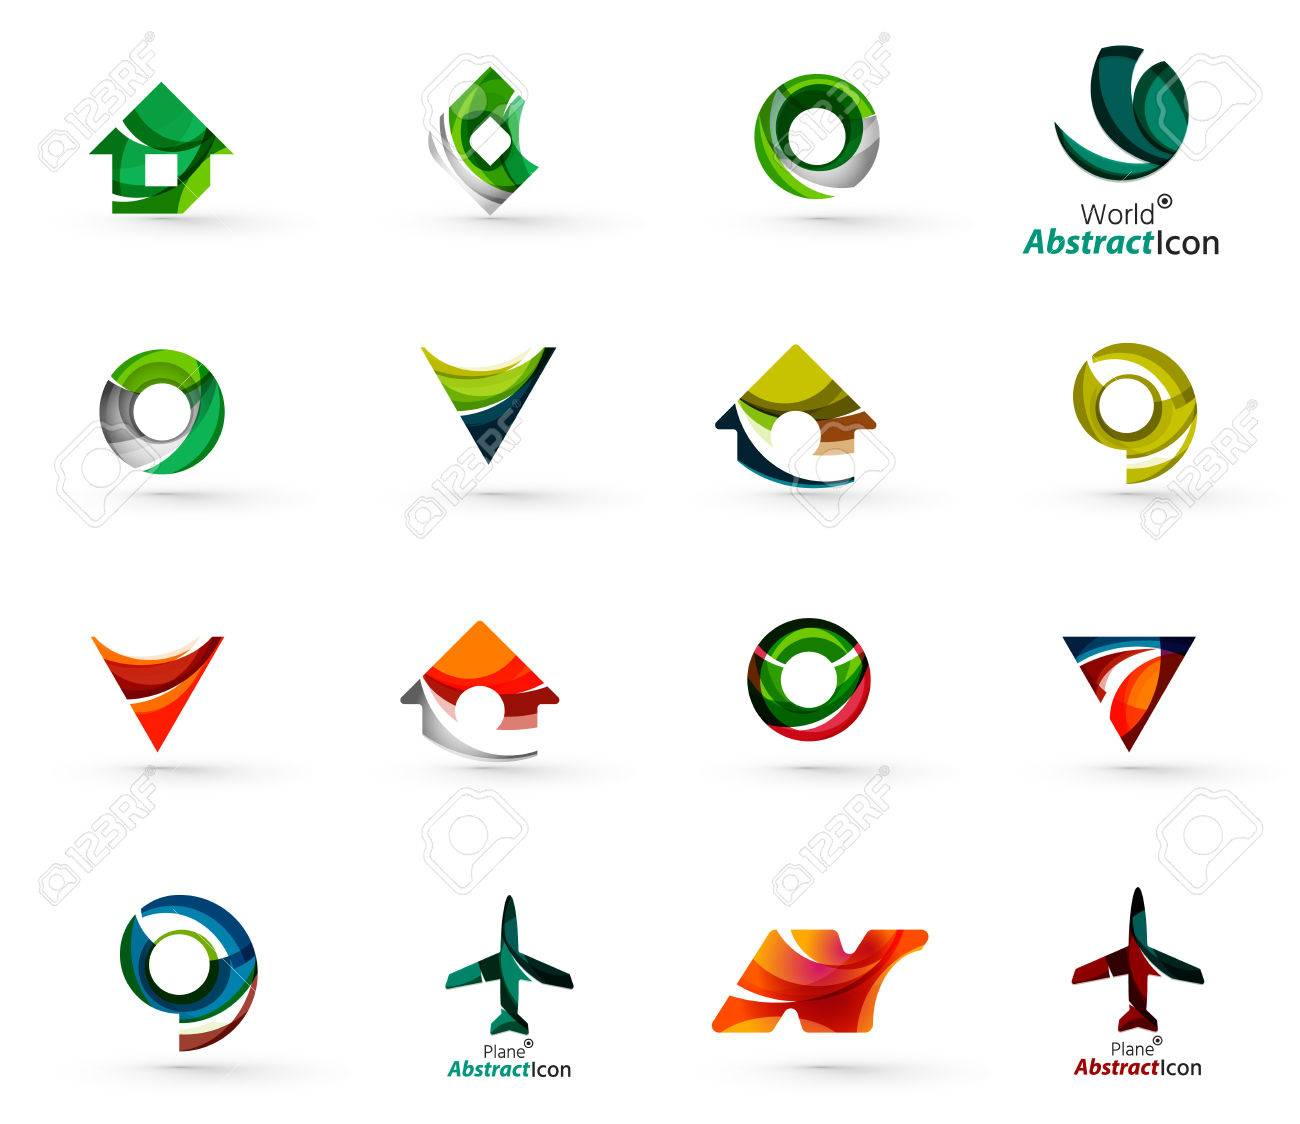 Set of various geometric icons - rectangles triangles squares or circles. Made of swirls and flowing wavy elements. Business, app, web design logo templates. - 44544388